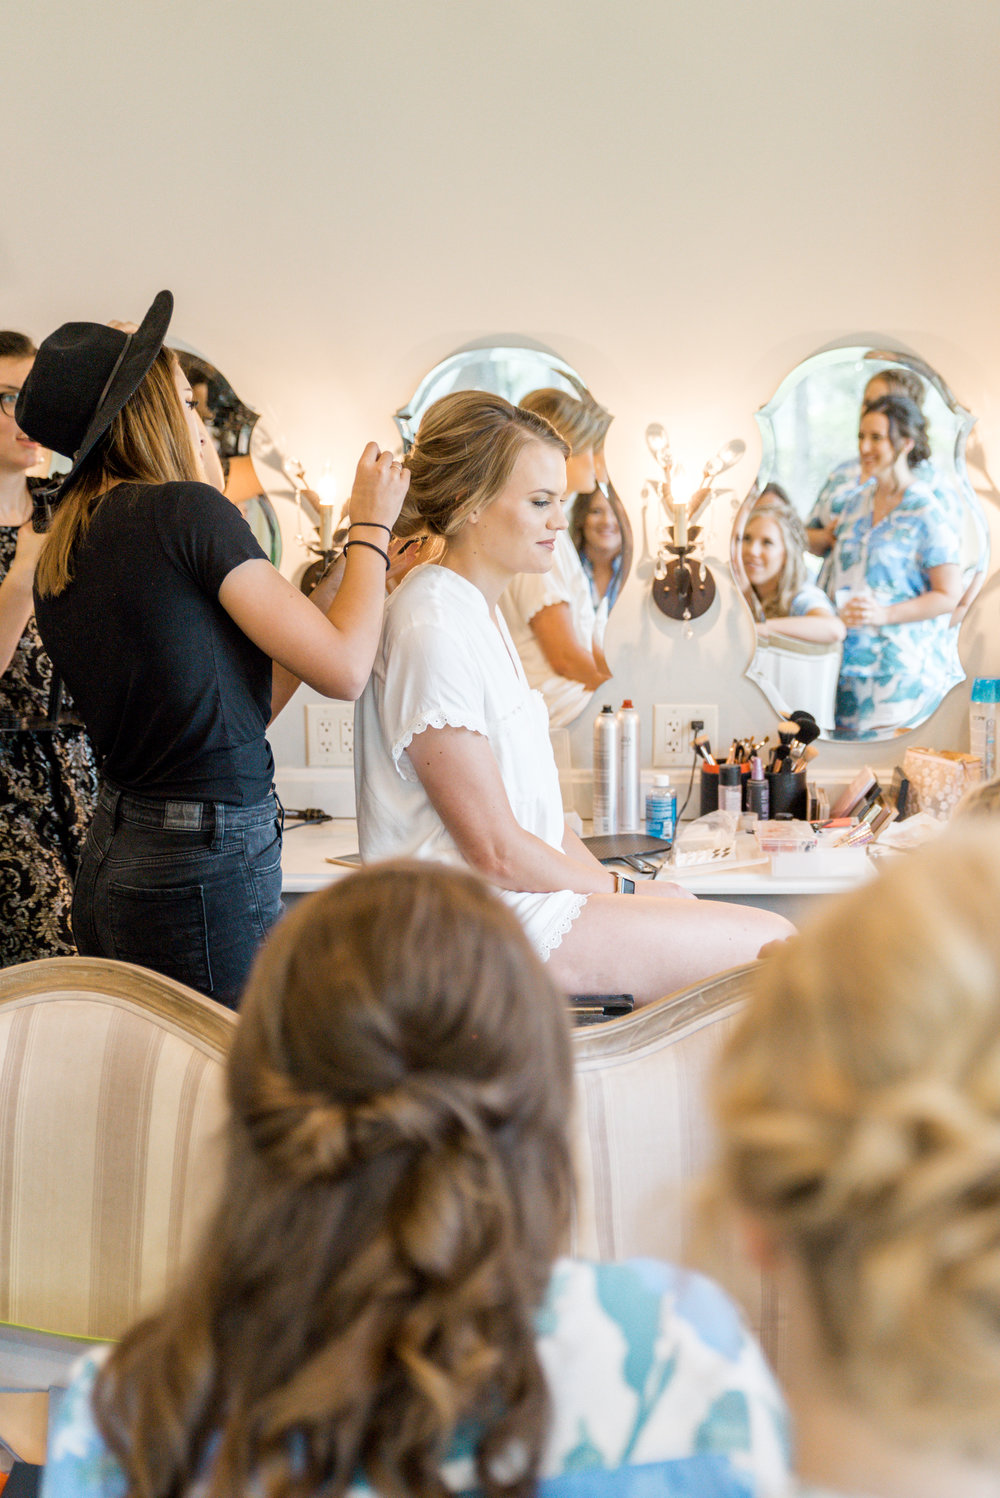 Getting Ready Images wedding day planner coordinator epoch co